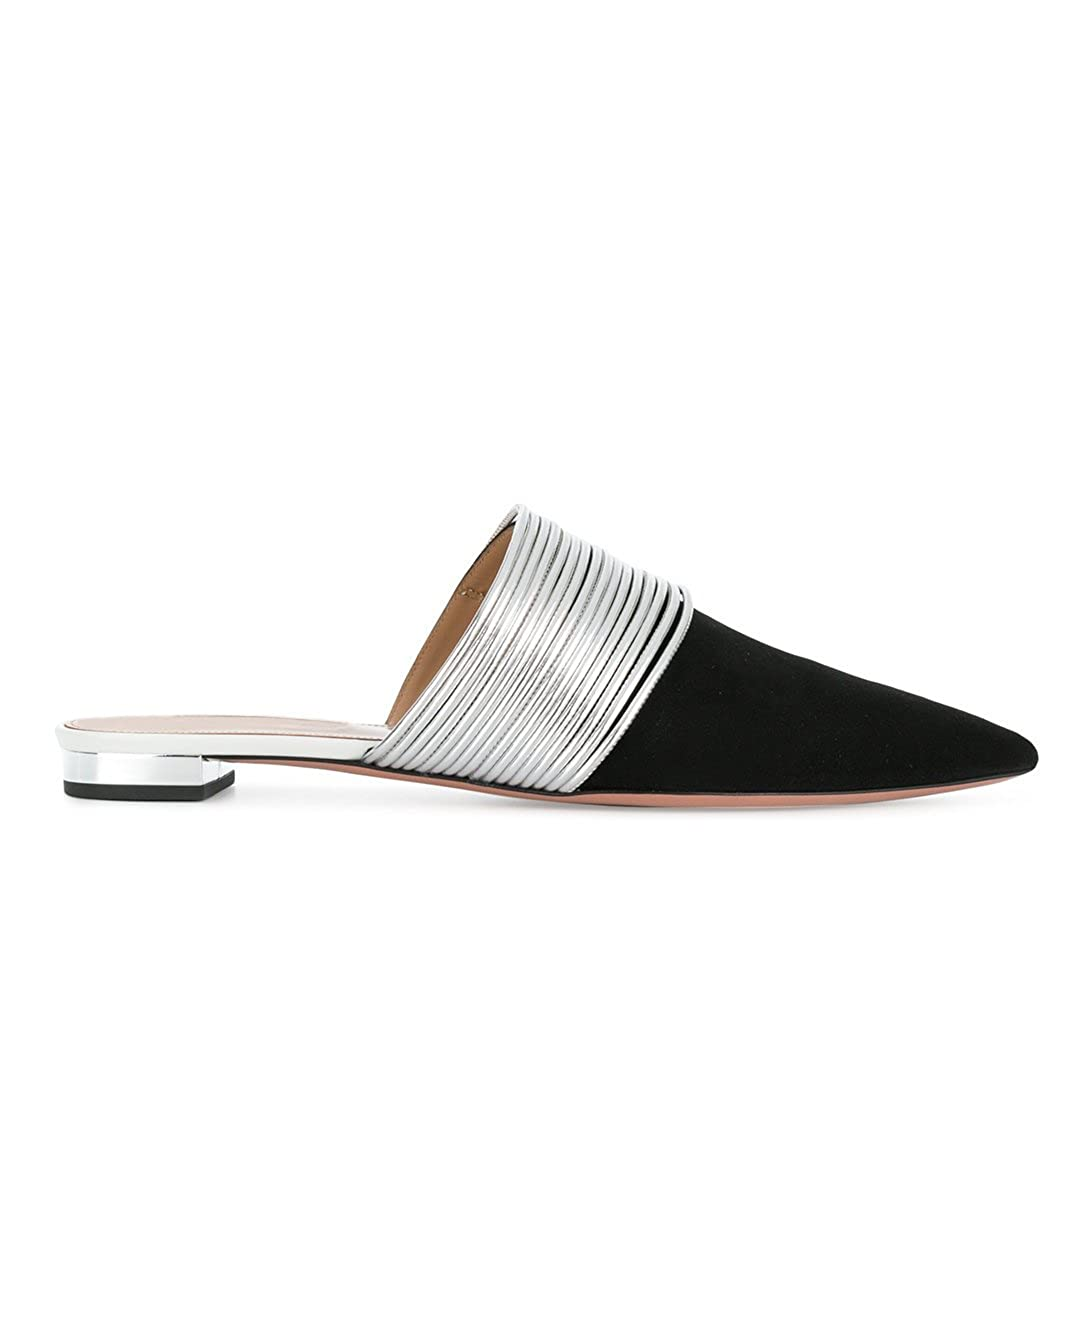 Sammitop Womens Pointed Toe Slippers,Black and Silver Slip-on Mules,Low Heel Fashion Summer Shoes